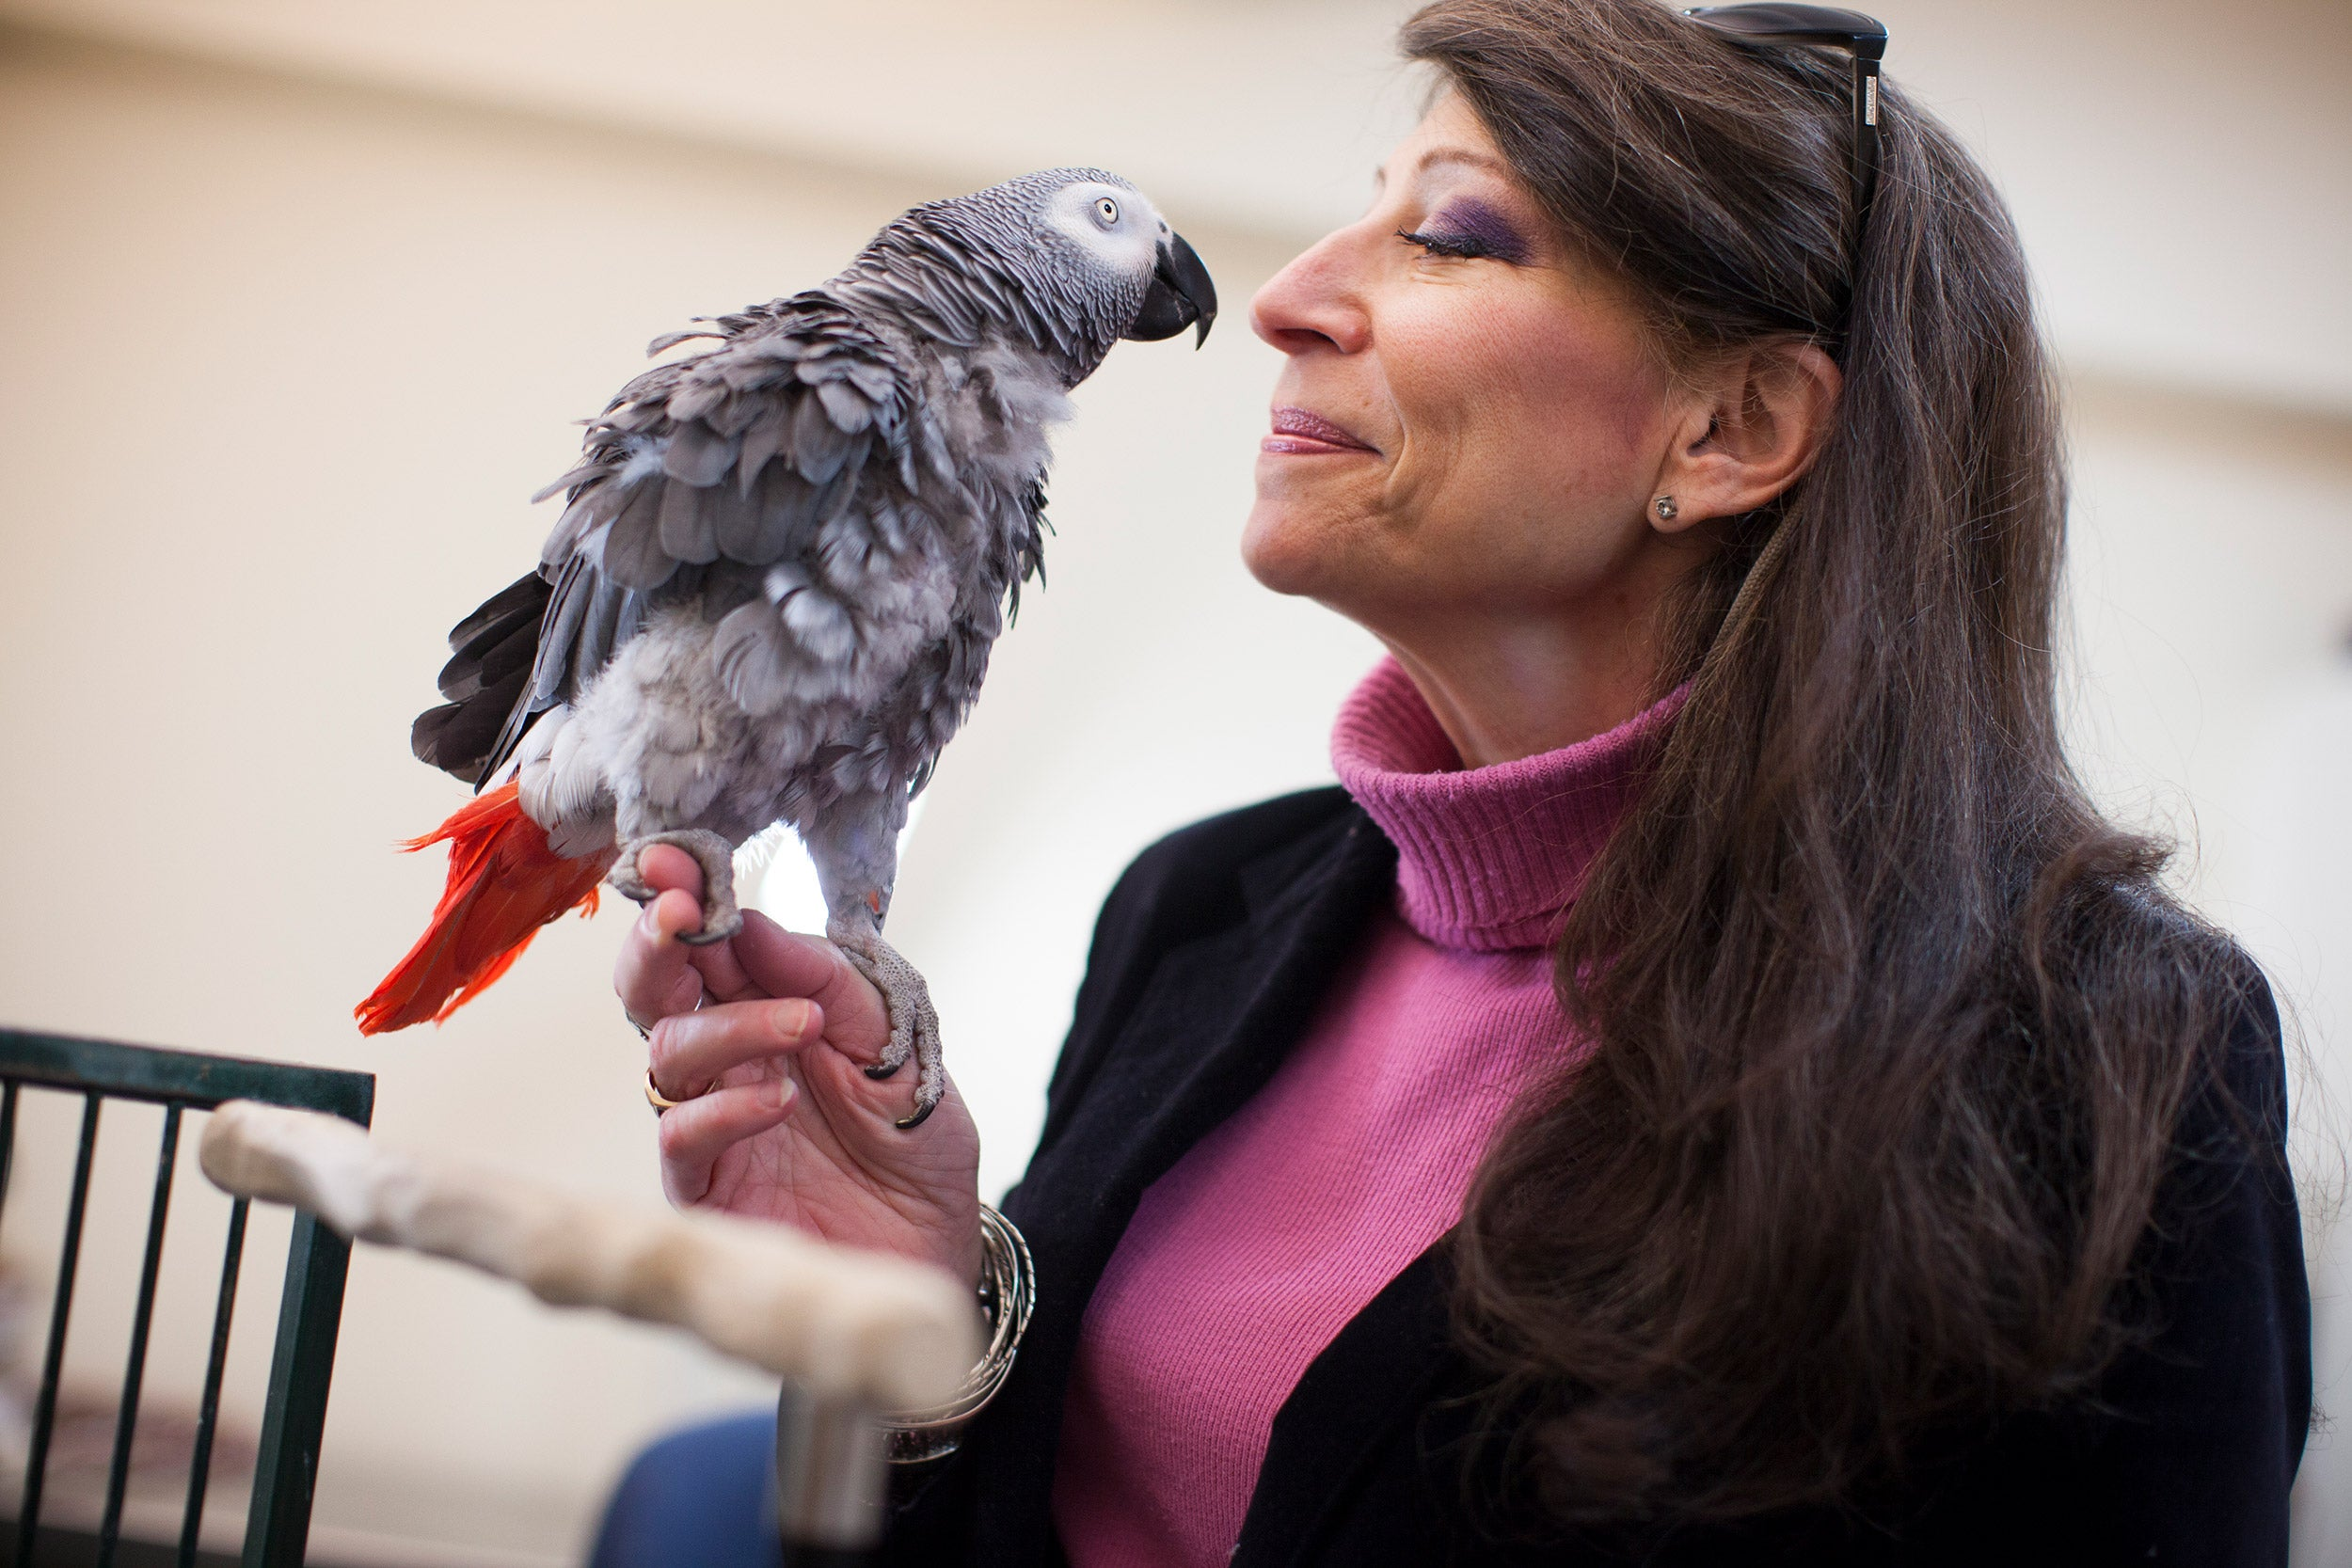 Irene Pepperberg with her parrot.